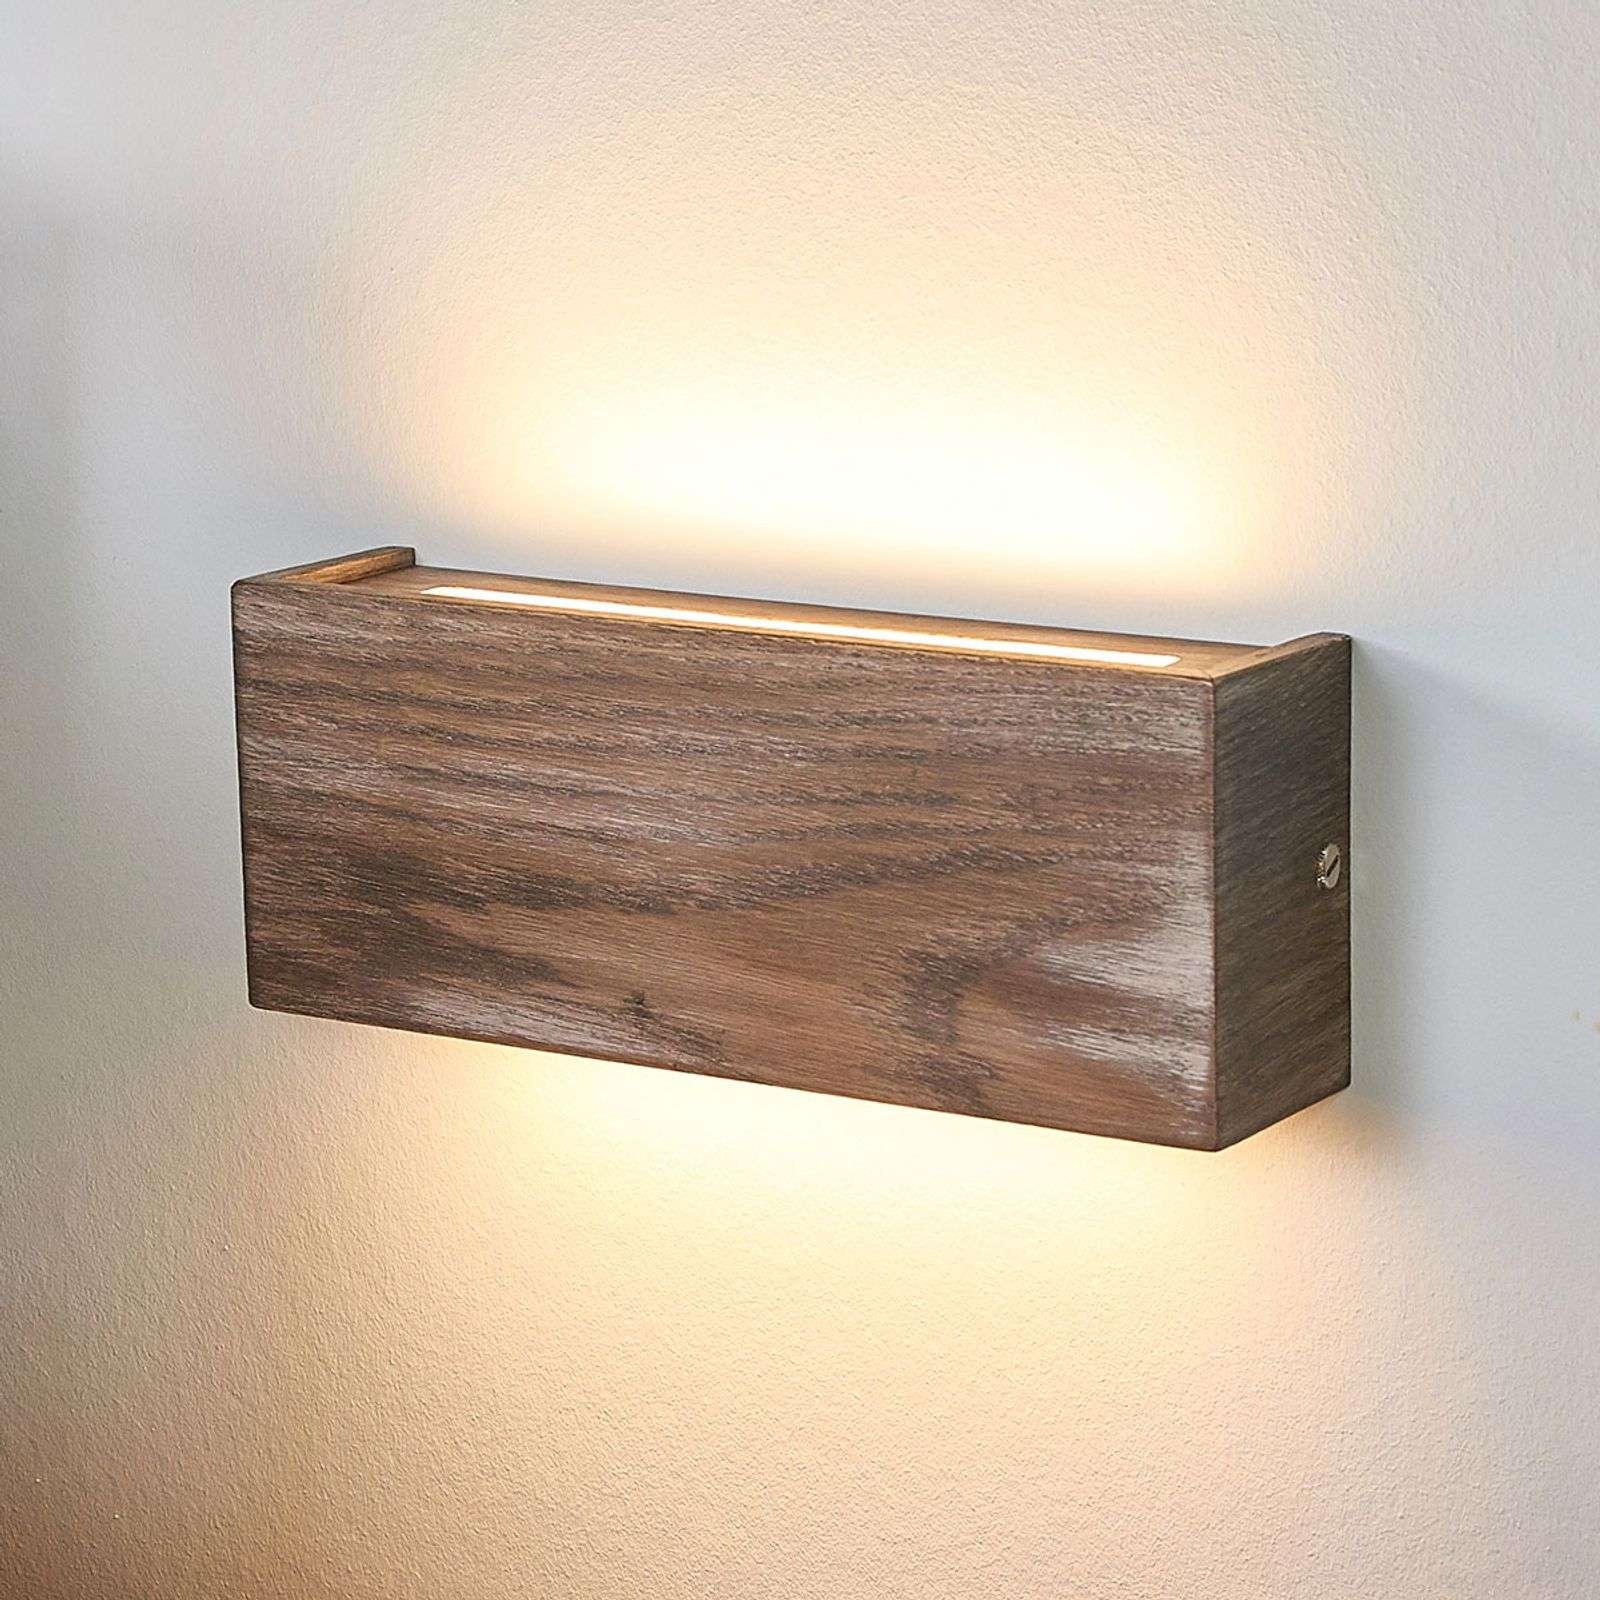 Lámpara de pared LED de madera Mila atenuable 25cm